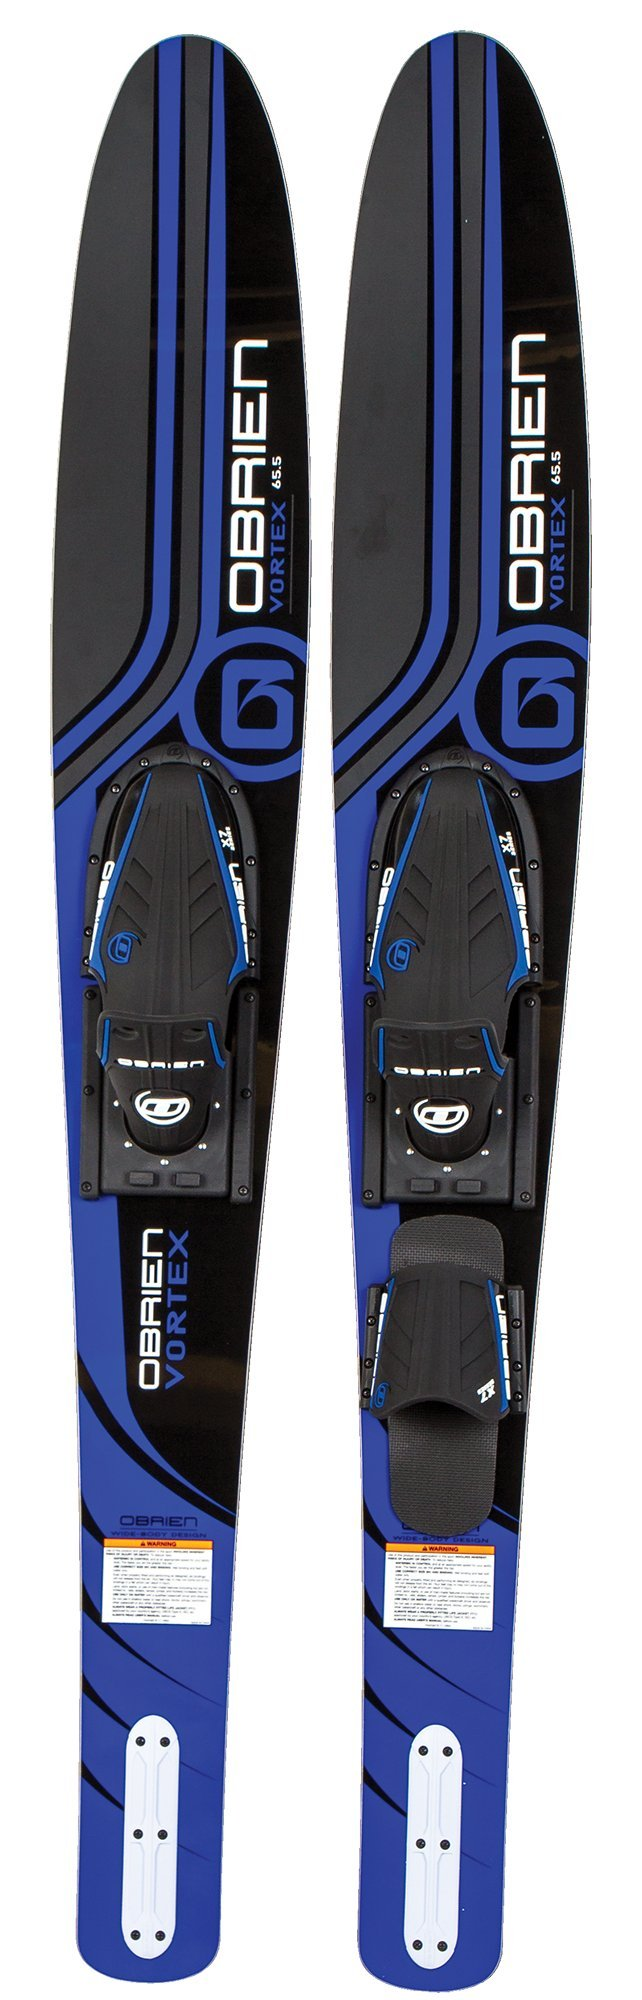 O'Brien Vortex Widebody Combo Water Skis 65.5'', Blue